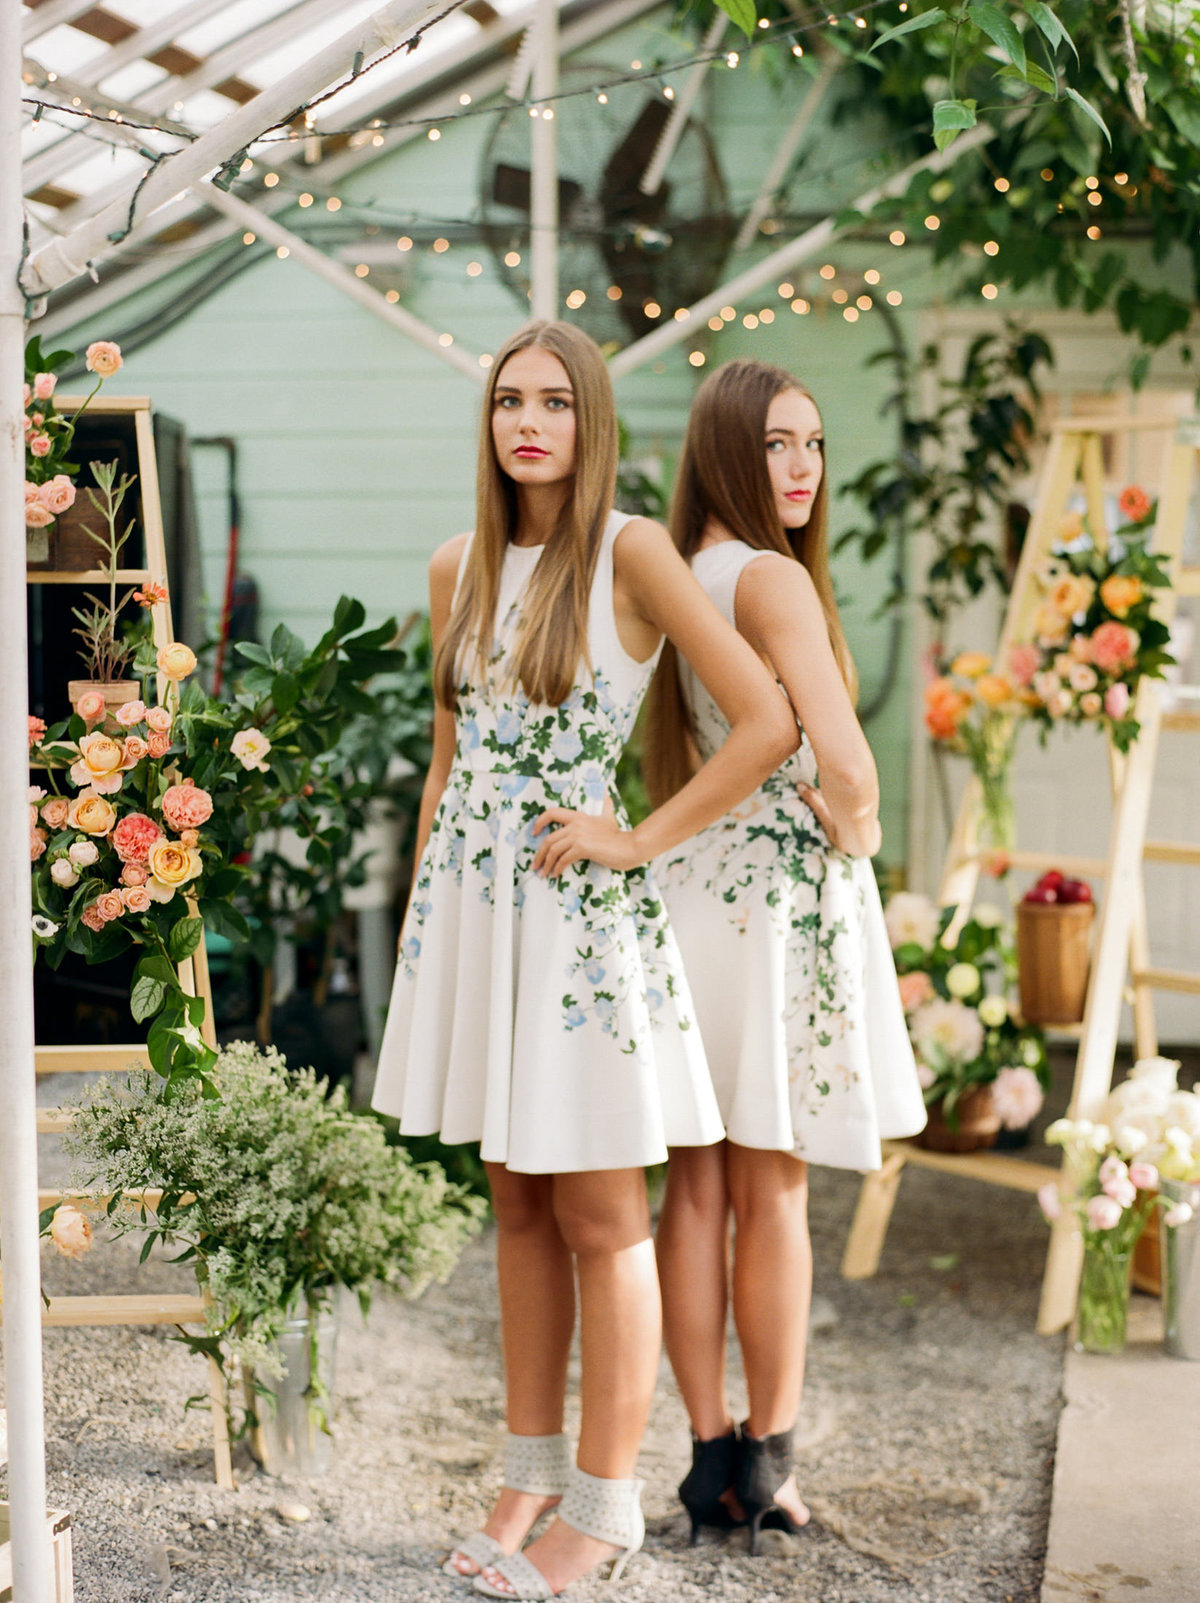 WhimsicalGreenhouseFashion-0003-Shieldmaidens_Film_015-474490020015